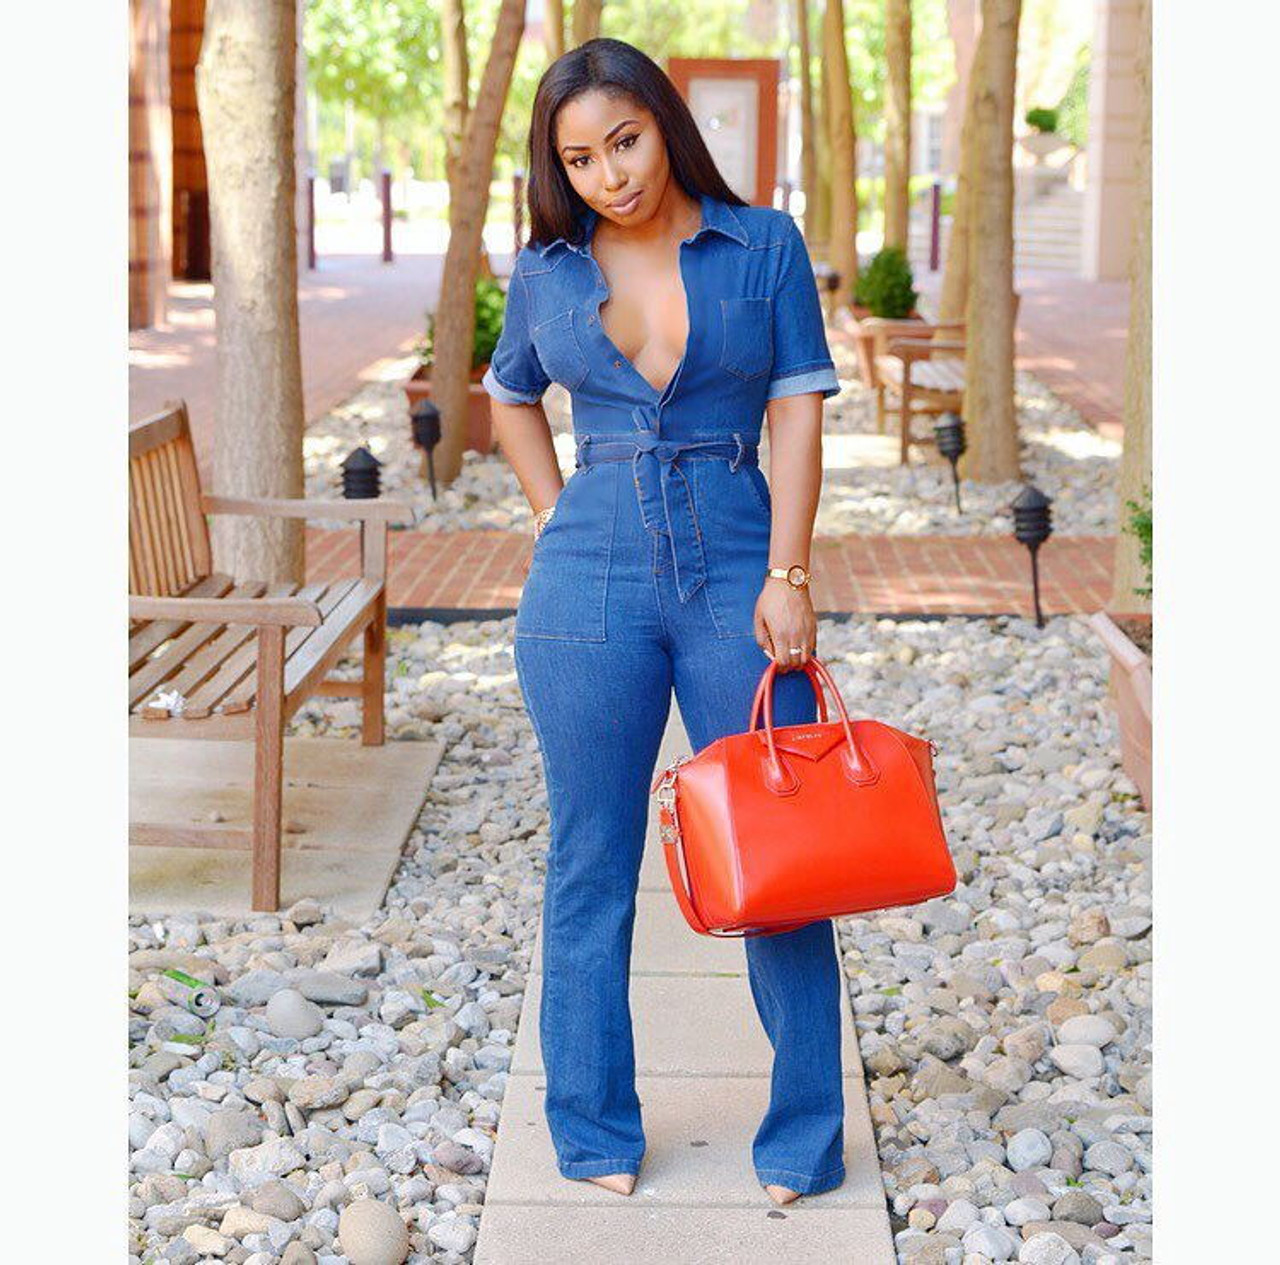 paras laatu hinta alennettu parhaat Casual Denim Romper Jumpsuits for Women Solid One Piece Body Mujer Jean  Jumpsuits with Sashes Summer Blue Overalls Plus Size